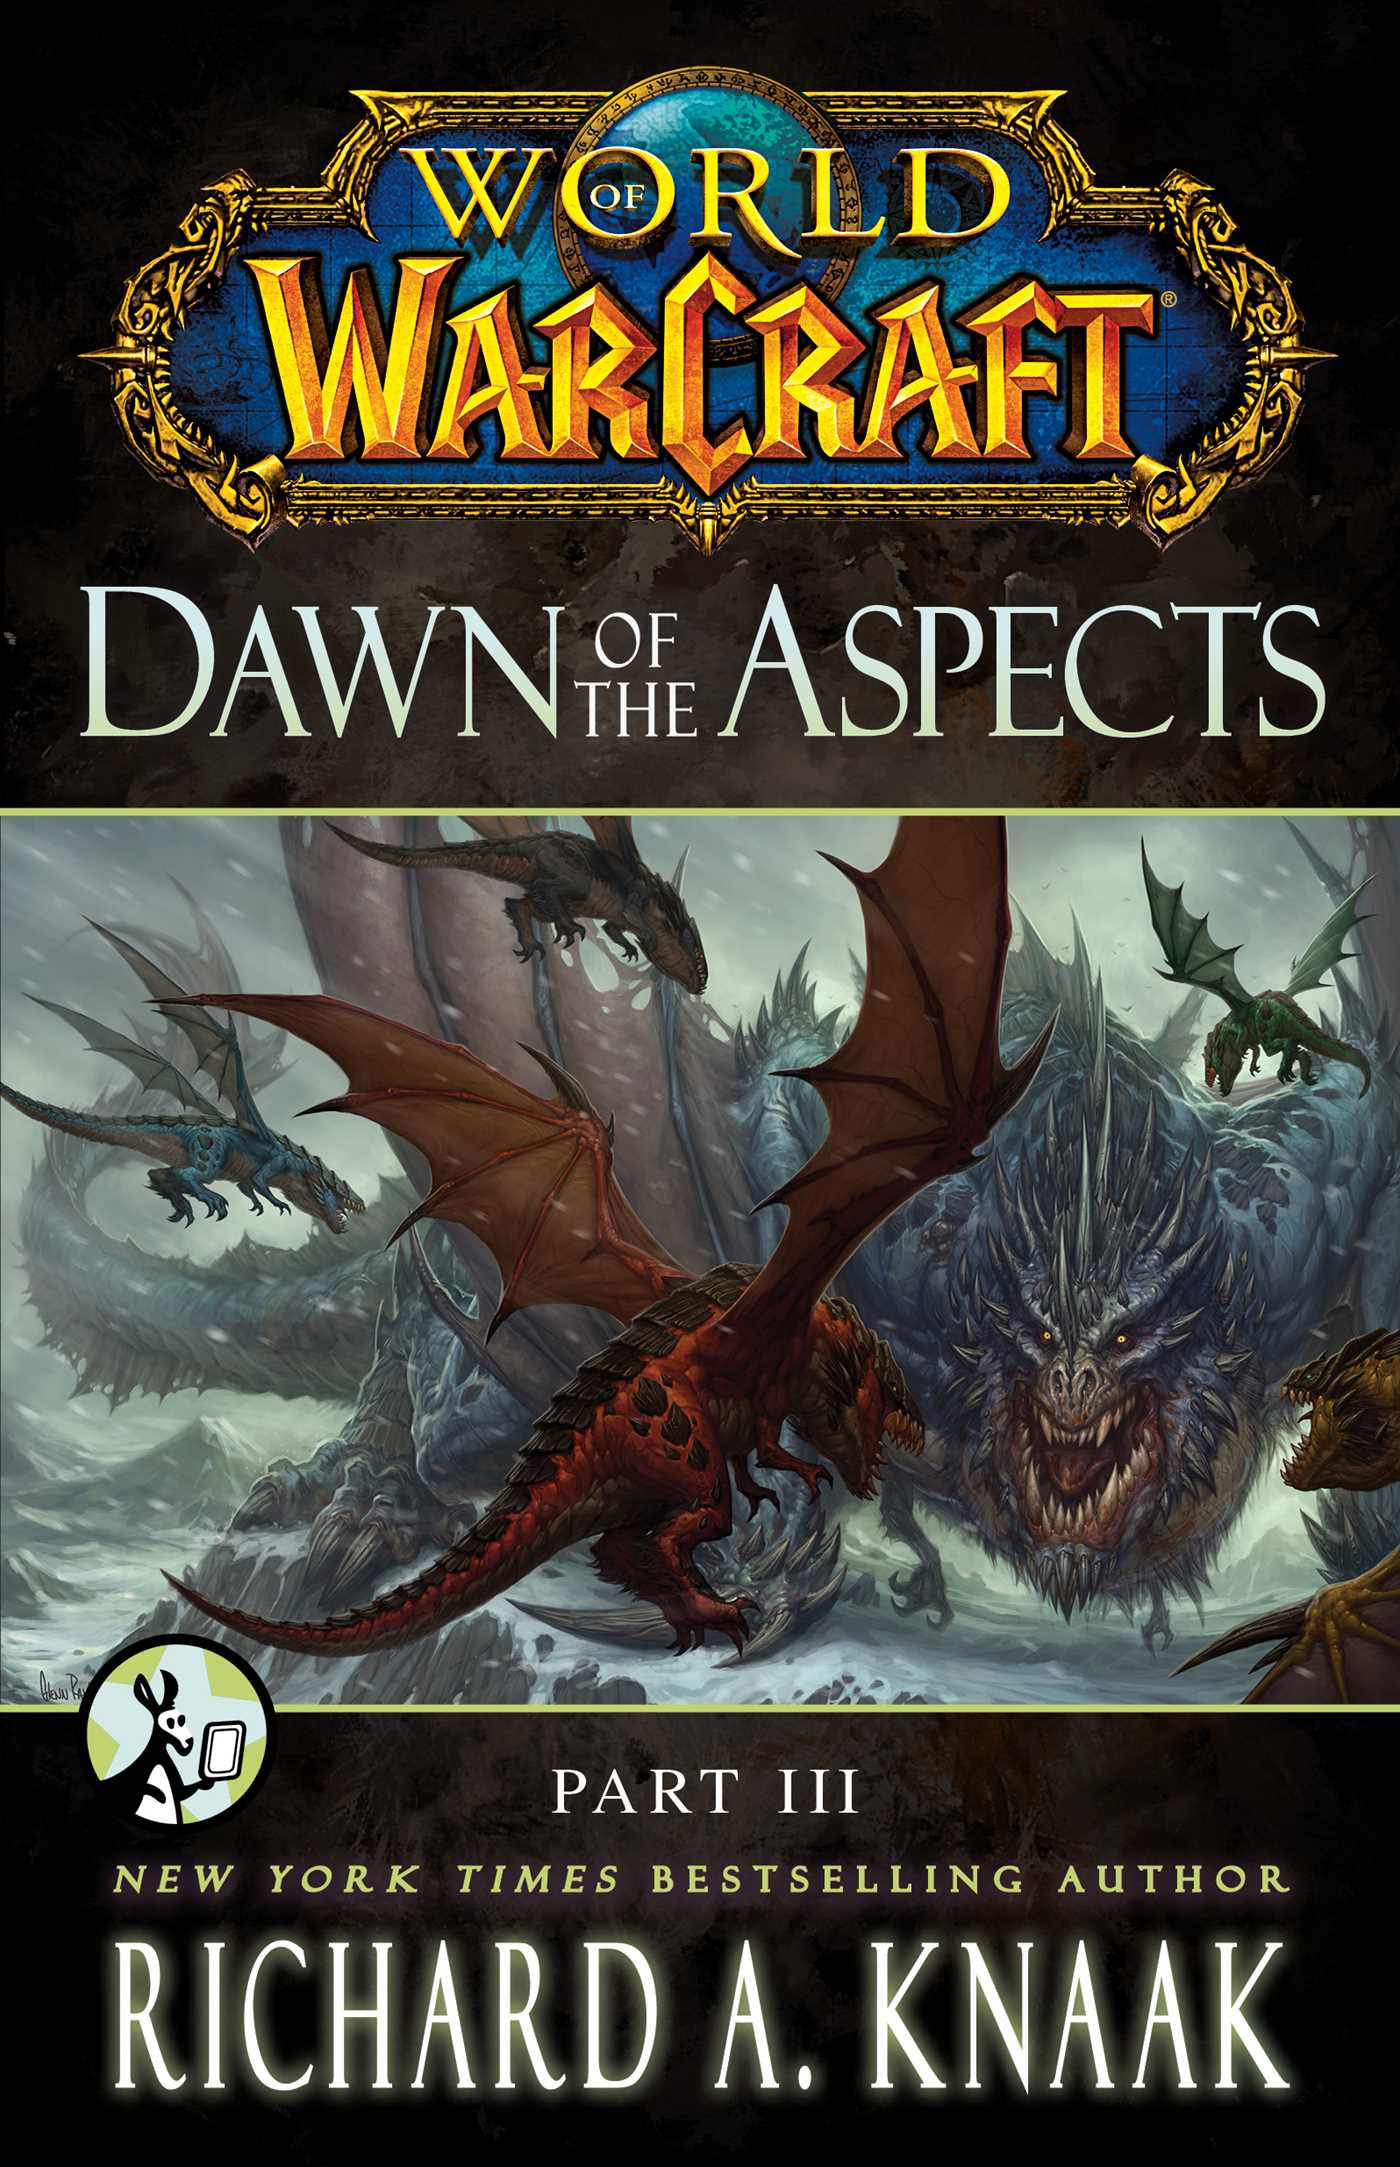 World of warcraft dawn of the aspects part iii 9781476708621 hr